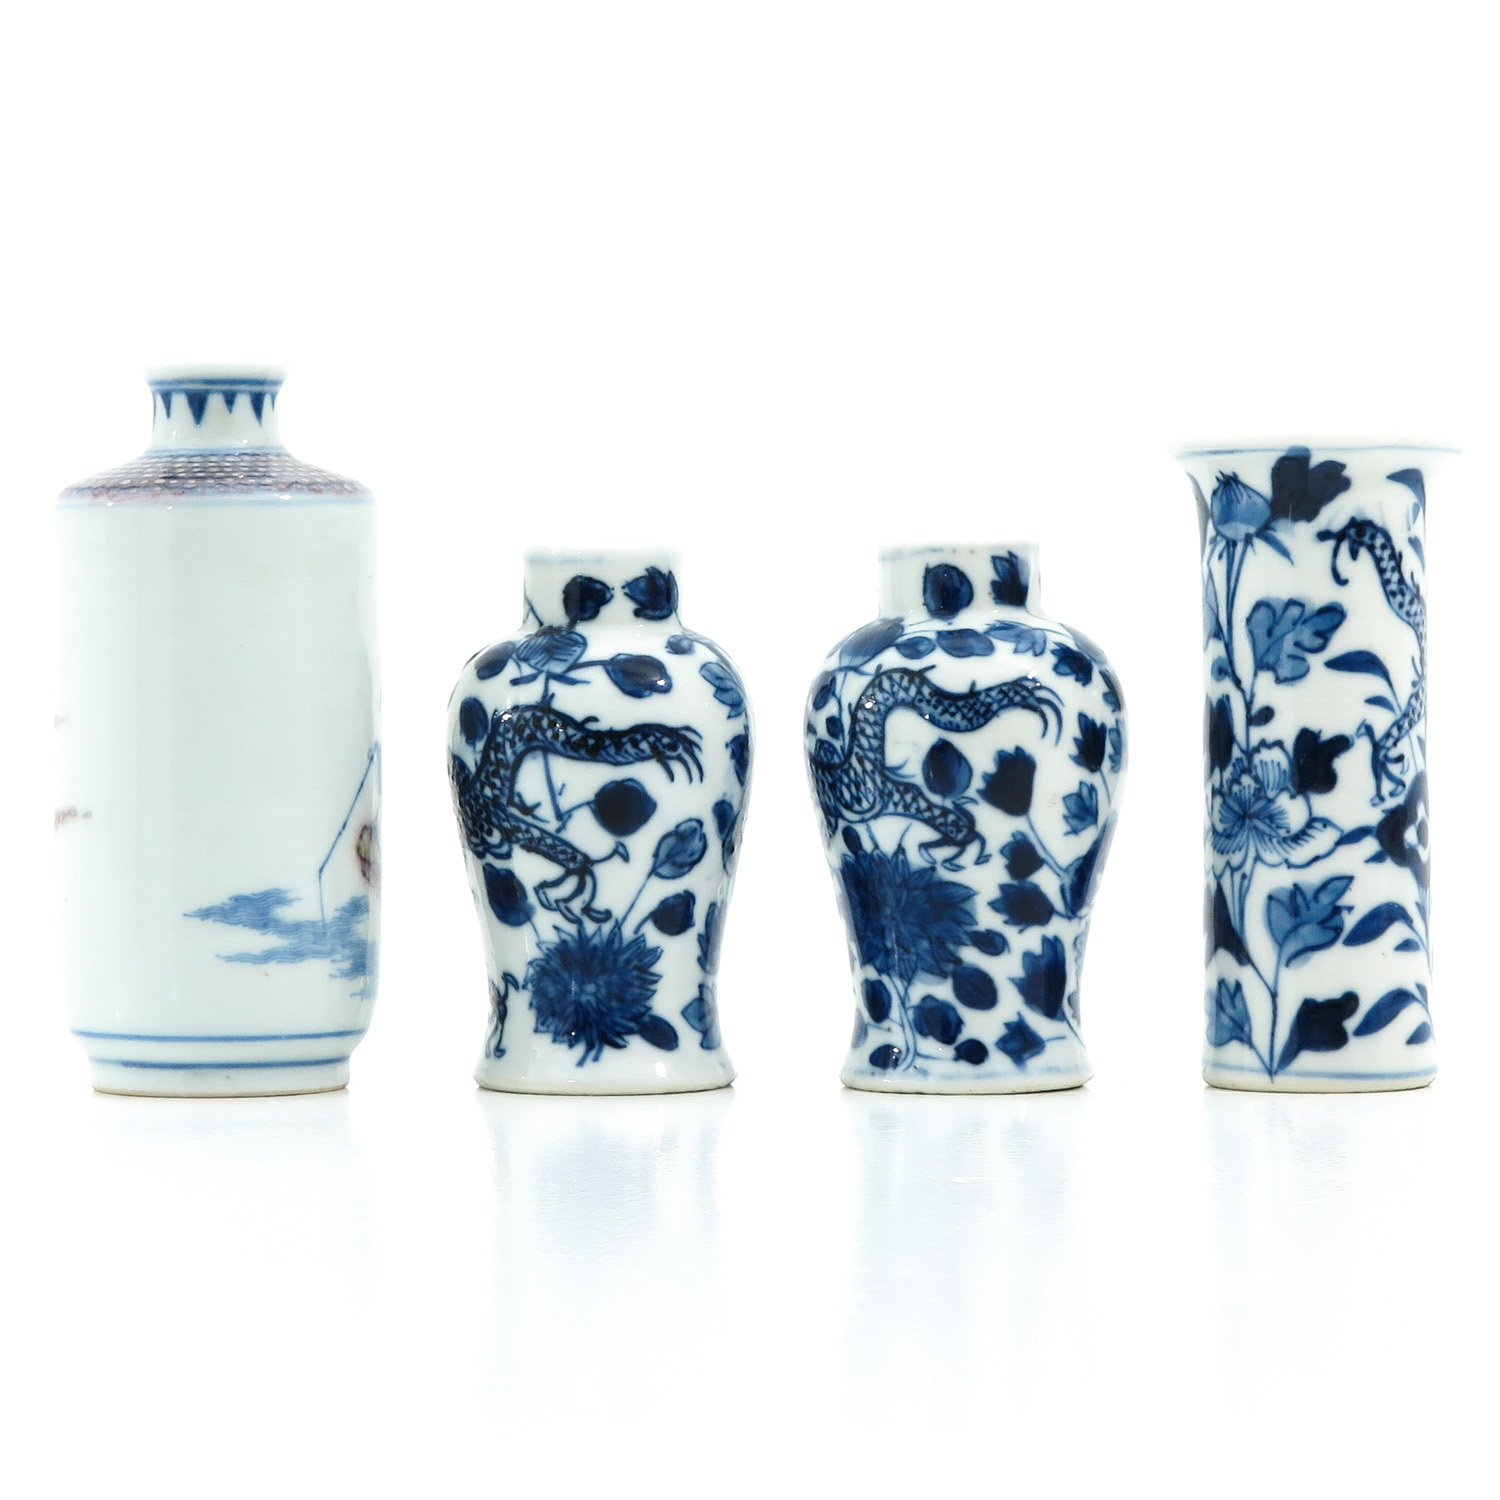 A Collection of 4 Miniature Vases - Image 3 of 10